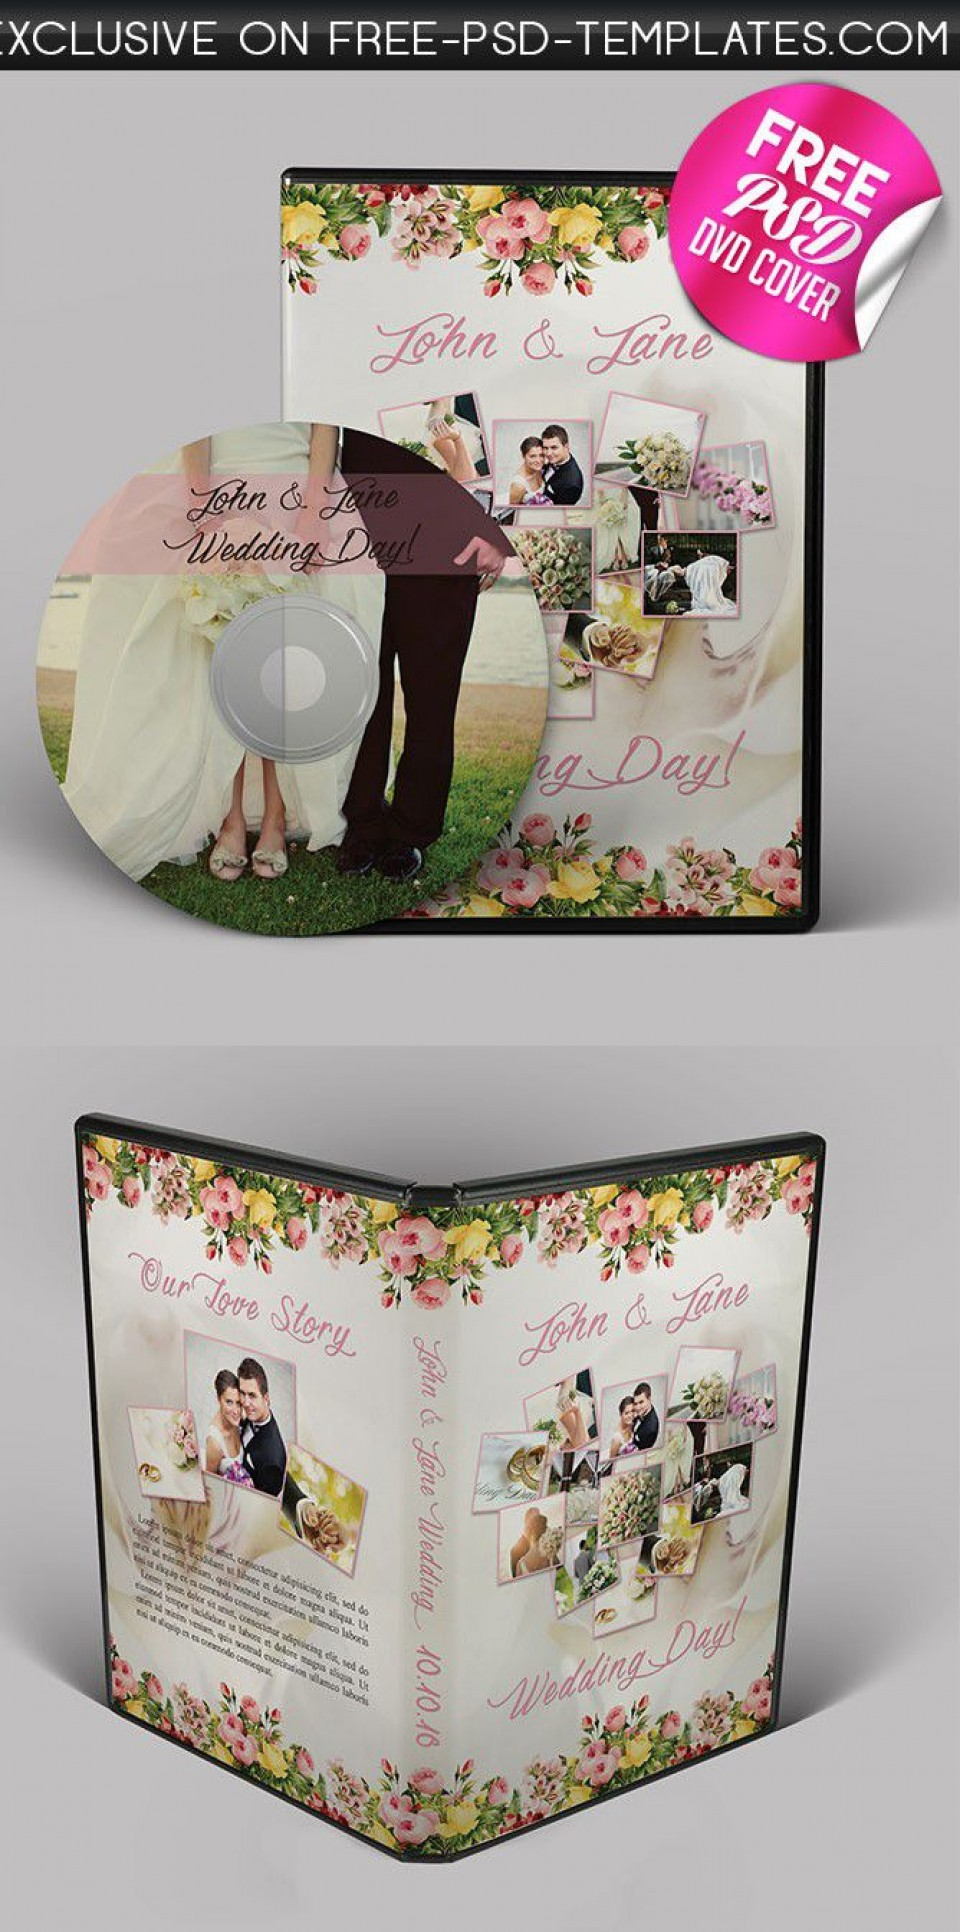 001 Dreaded Wedding Cd Cover Design Template Free Download High Definition 960